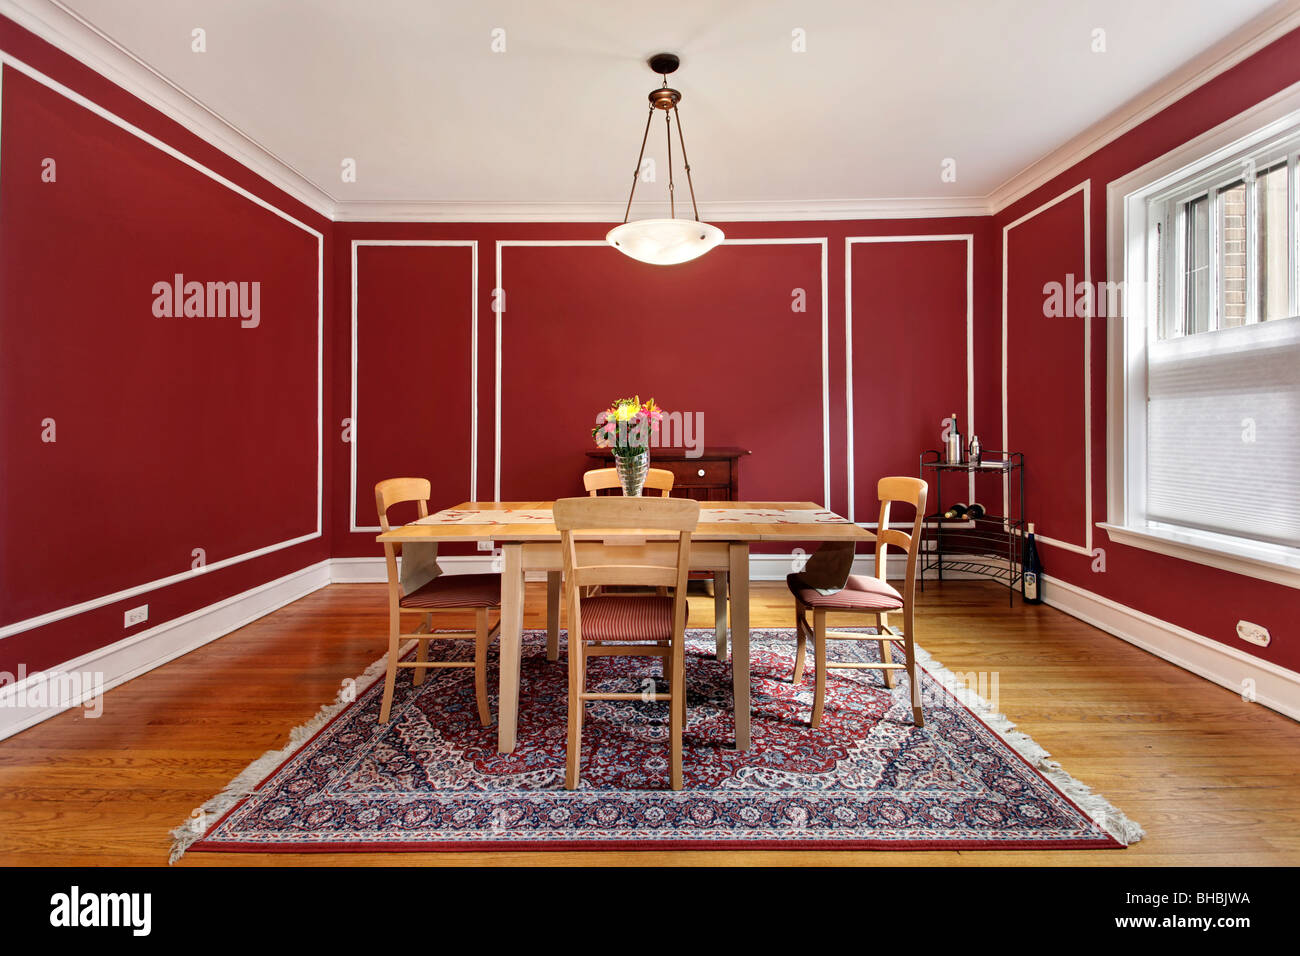 Dining Room In Condo With Red Walls Stock Photo: 27915814 ...